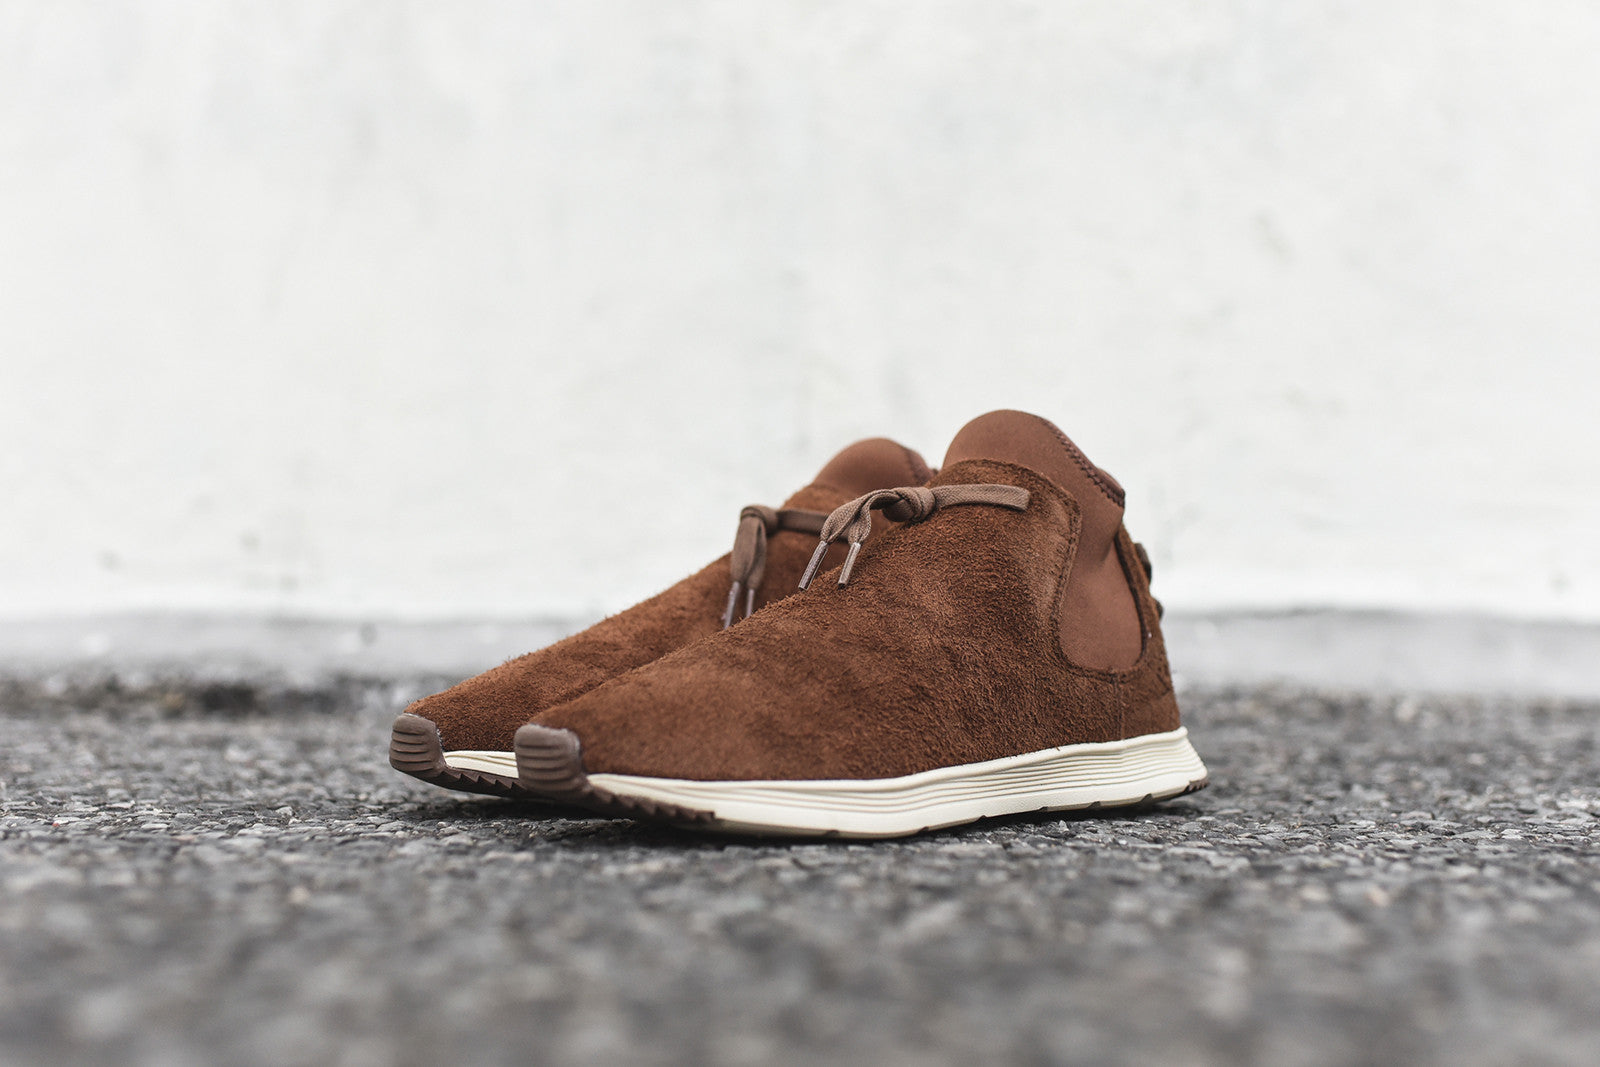 Ransom Holding Co. Brohm Lite - Chocolate / Light Bone